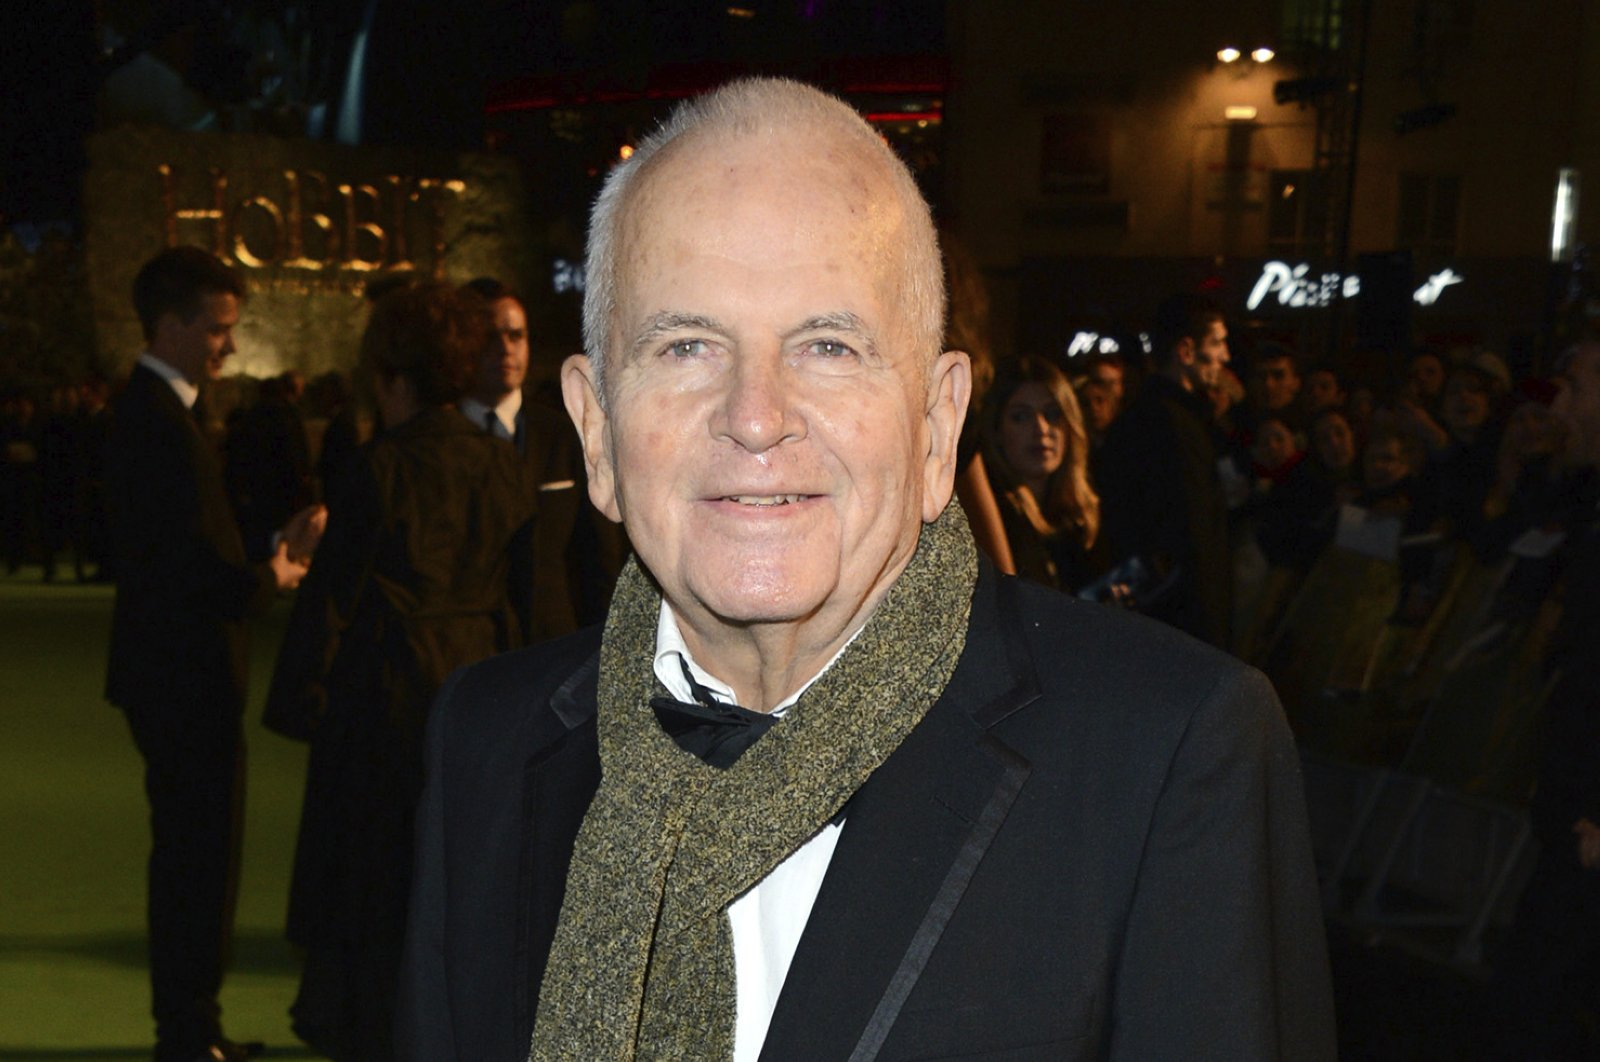 """In this Dec. 12, 2012 file photo, actor Ian Holm appears at the premiere of """"The Hobbit: An Unexpected Journey"""" in London. (AP PHOTO)"""